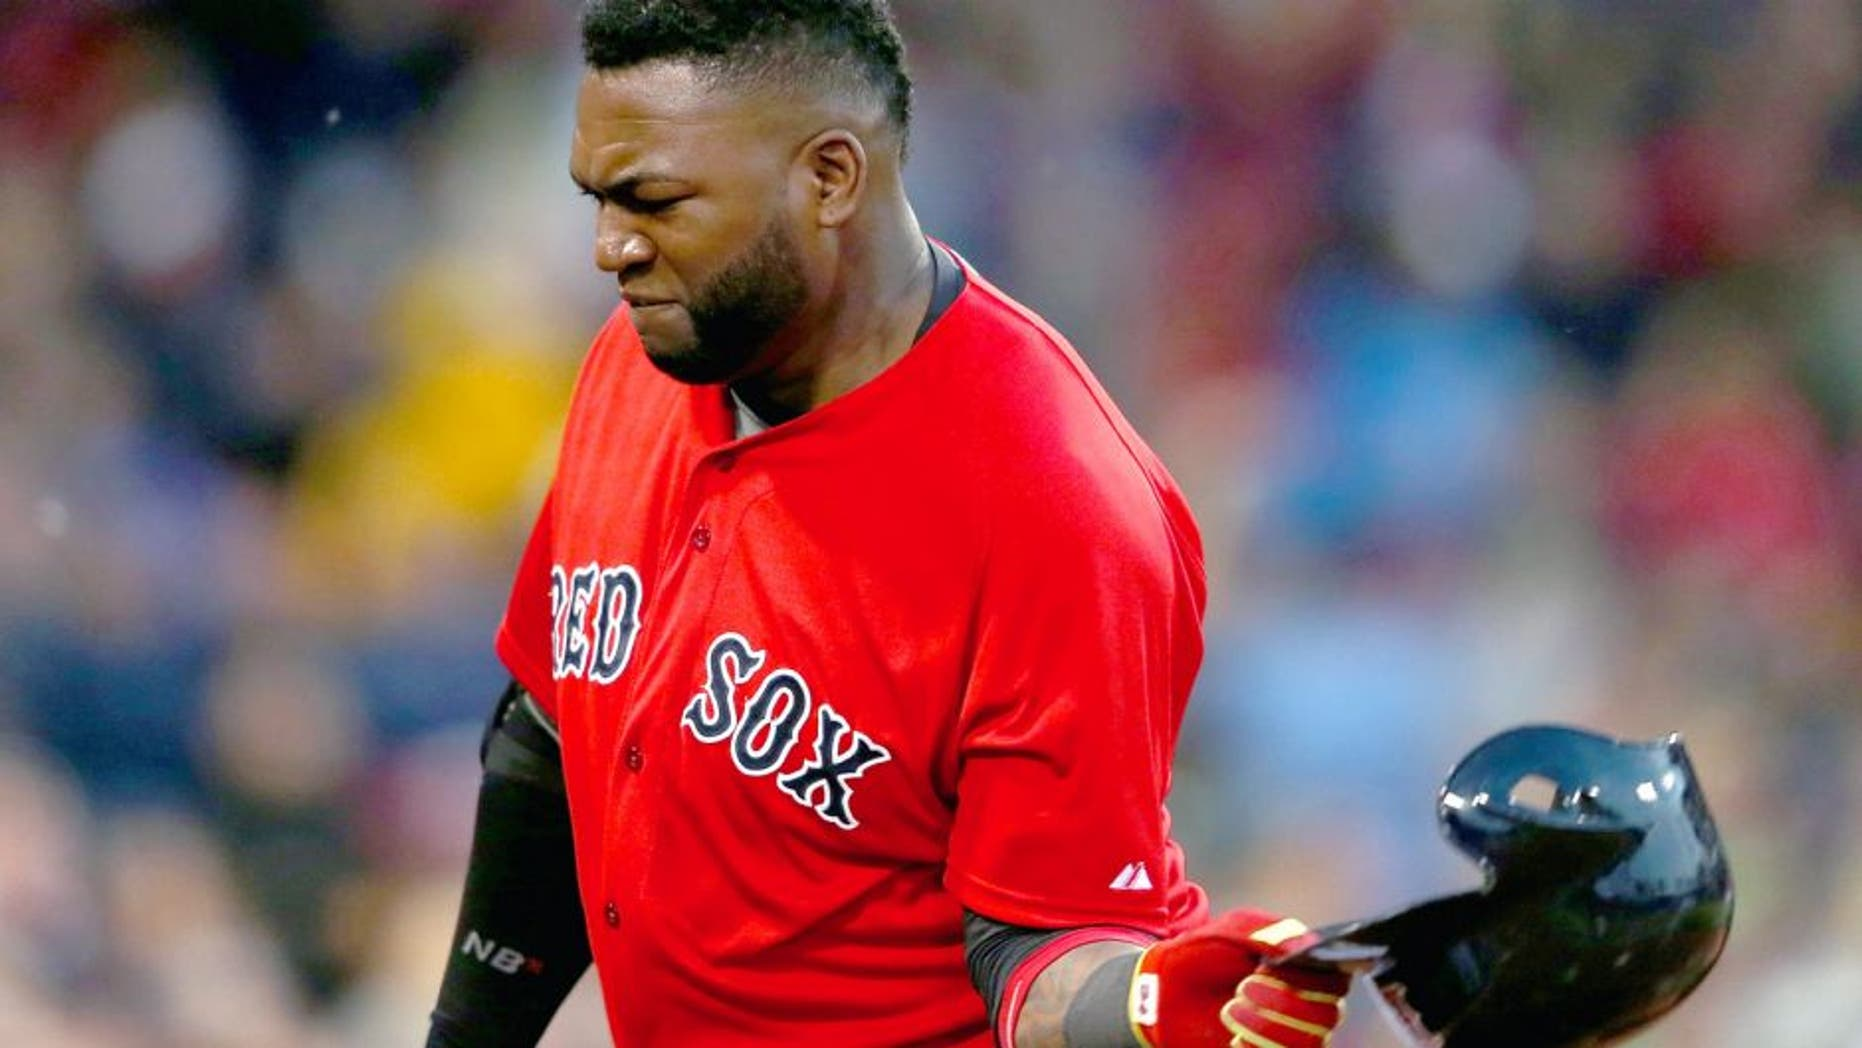 BOSTON, MA - JUNE 3: David Ortiz #34 of the Boston Red Sox throws his helmet after making an out in the fourth inning against the Minnesota Twins during the second game of a doubleheader at Fenway Park on June 3, 2015 in Boston, Massachusetts. (Photo by Jim Rogash/Getty Images)